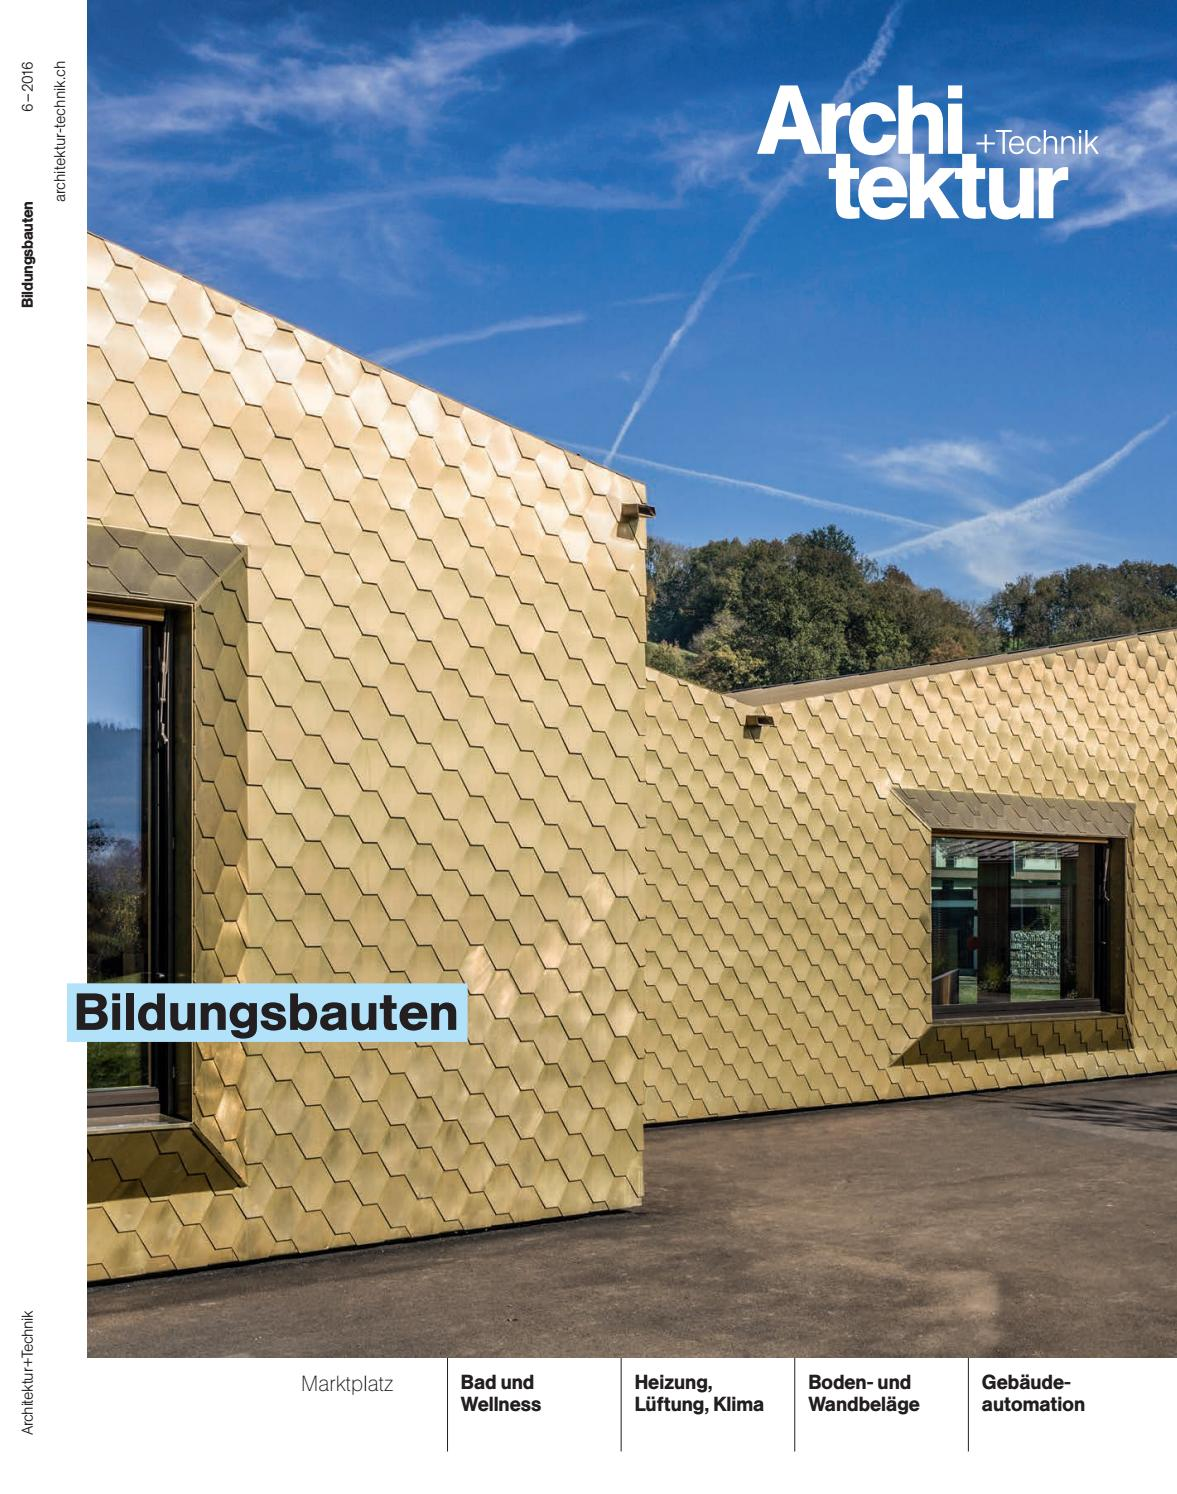 Anthrazit Fenster Welche Hausfarbe Architektur+technik 06 2016 By Bl Verlag Ag - Issuu